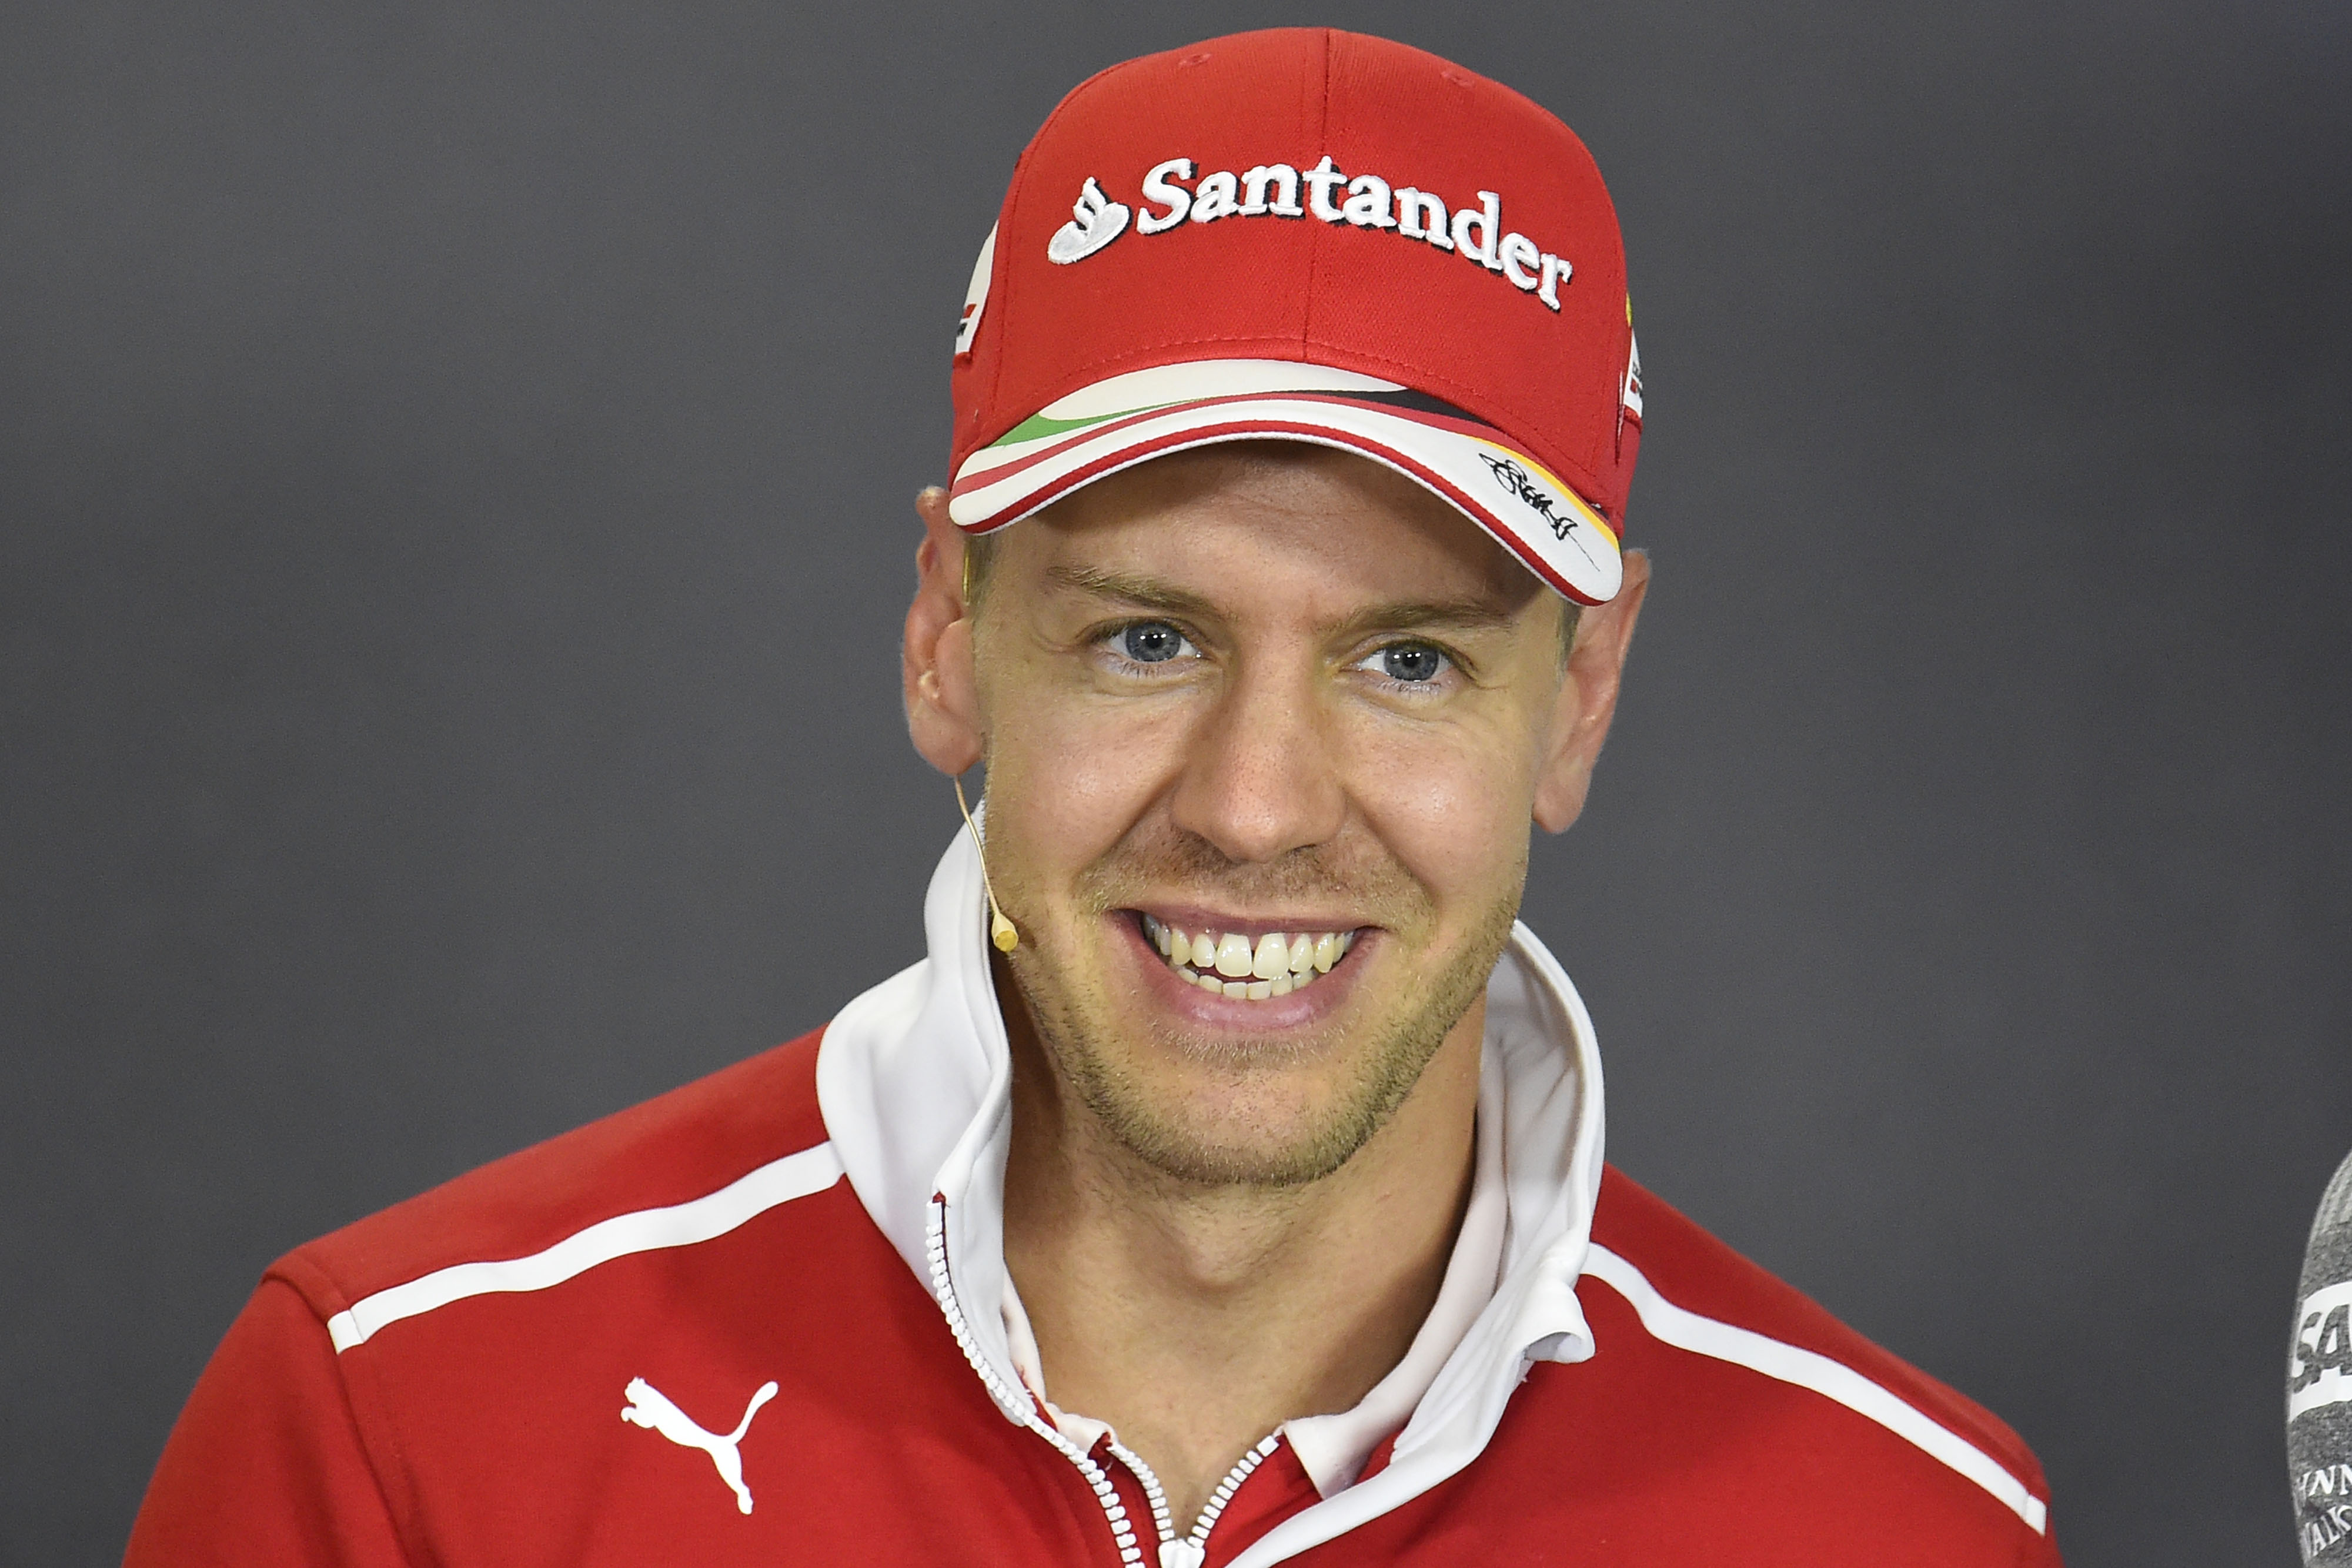 F1: Gp in Ungheria, Vettel in pole